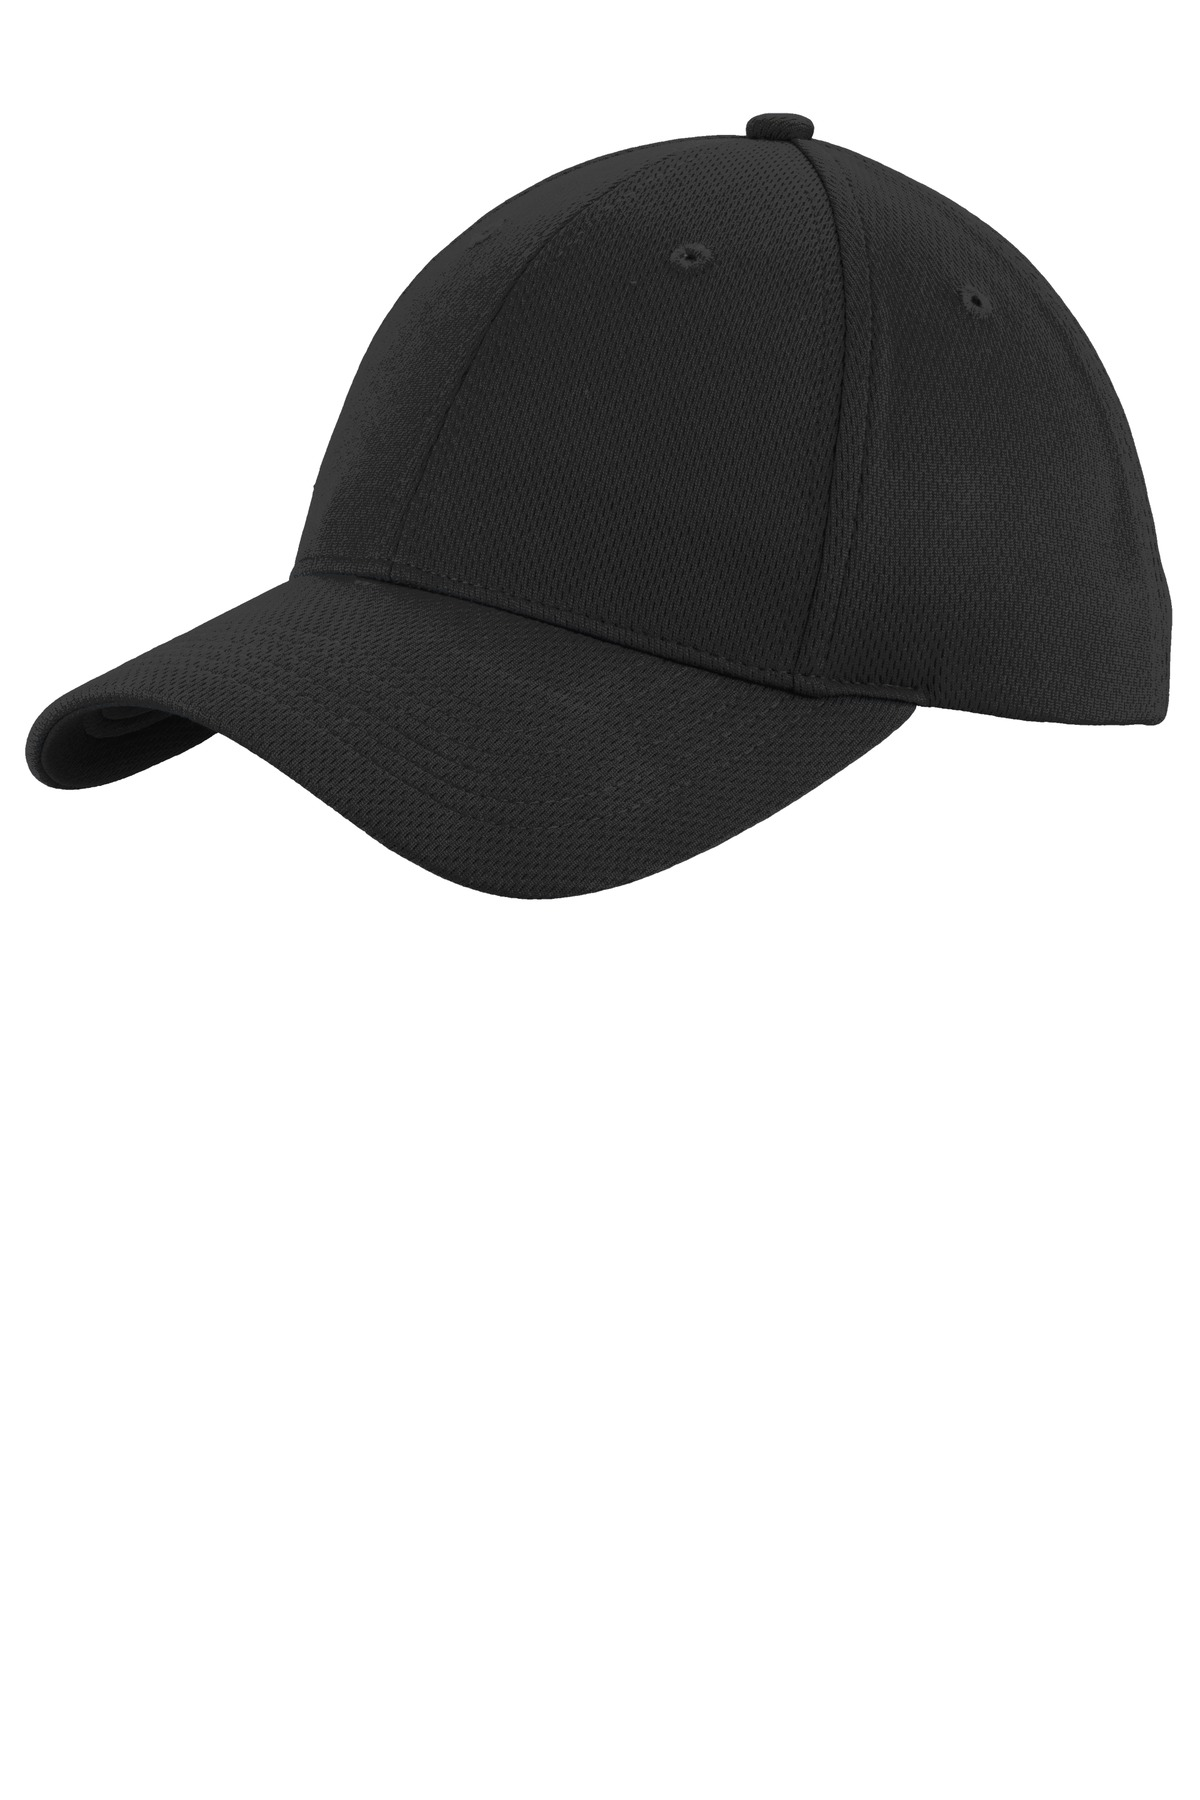 Sport-Tek ®  Youth PosiCharge ®  RacerMesh ®  Cap. YSTC26 - Black